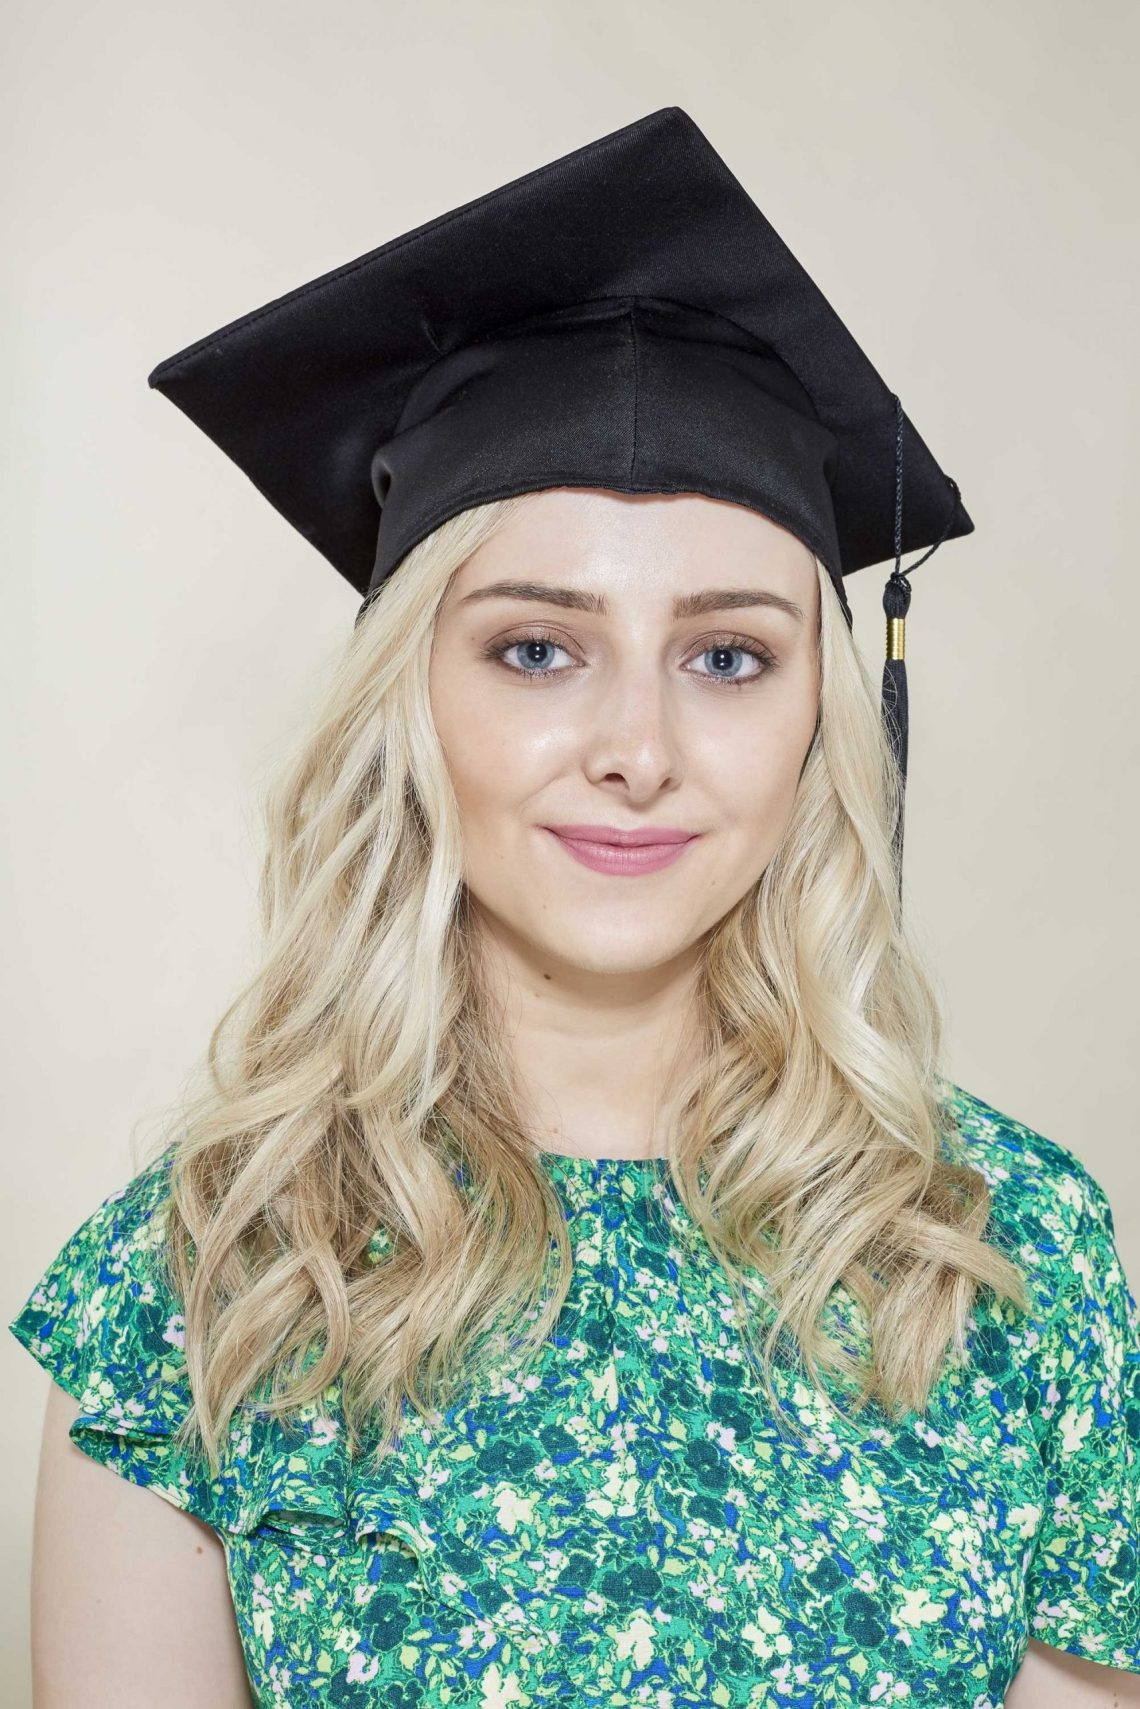 10 Top Graduation Hairstyles To Wear With Your Cap 10+ Adorable Graduation Hairstyles For Medium Length Hair With Cap